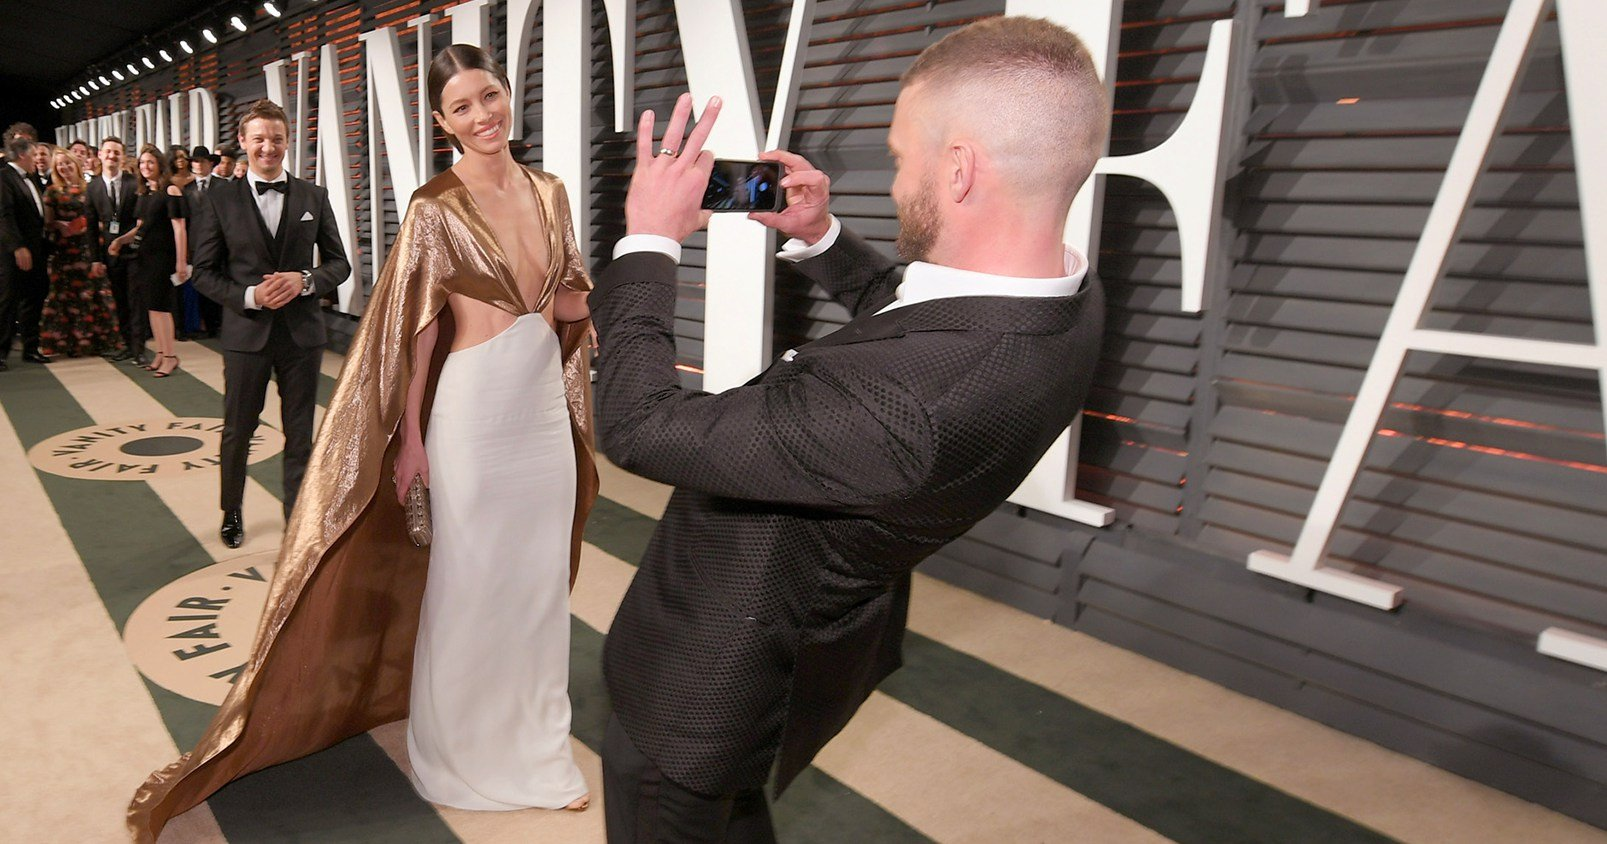 dd6aafb17 Justin Timberlake: Jessica Biel's Body Is 'a Temple' That 'Should Be ...